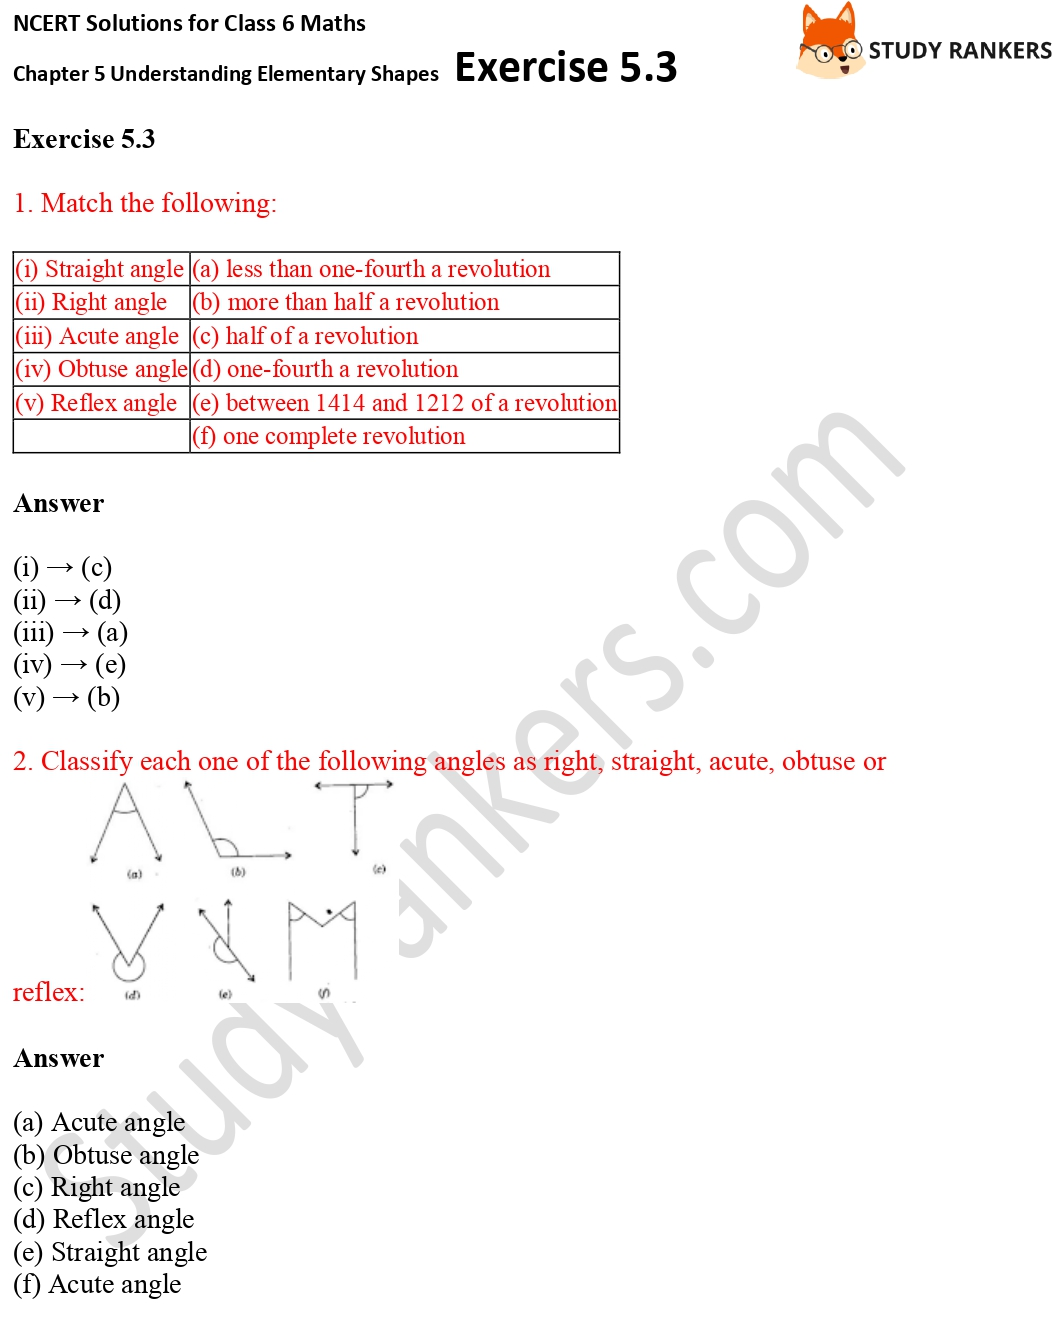 NCERT Solutions for Class 6 Maths Chapter 5 Understanding Elementary Shapes Exercise 5.3